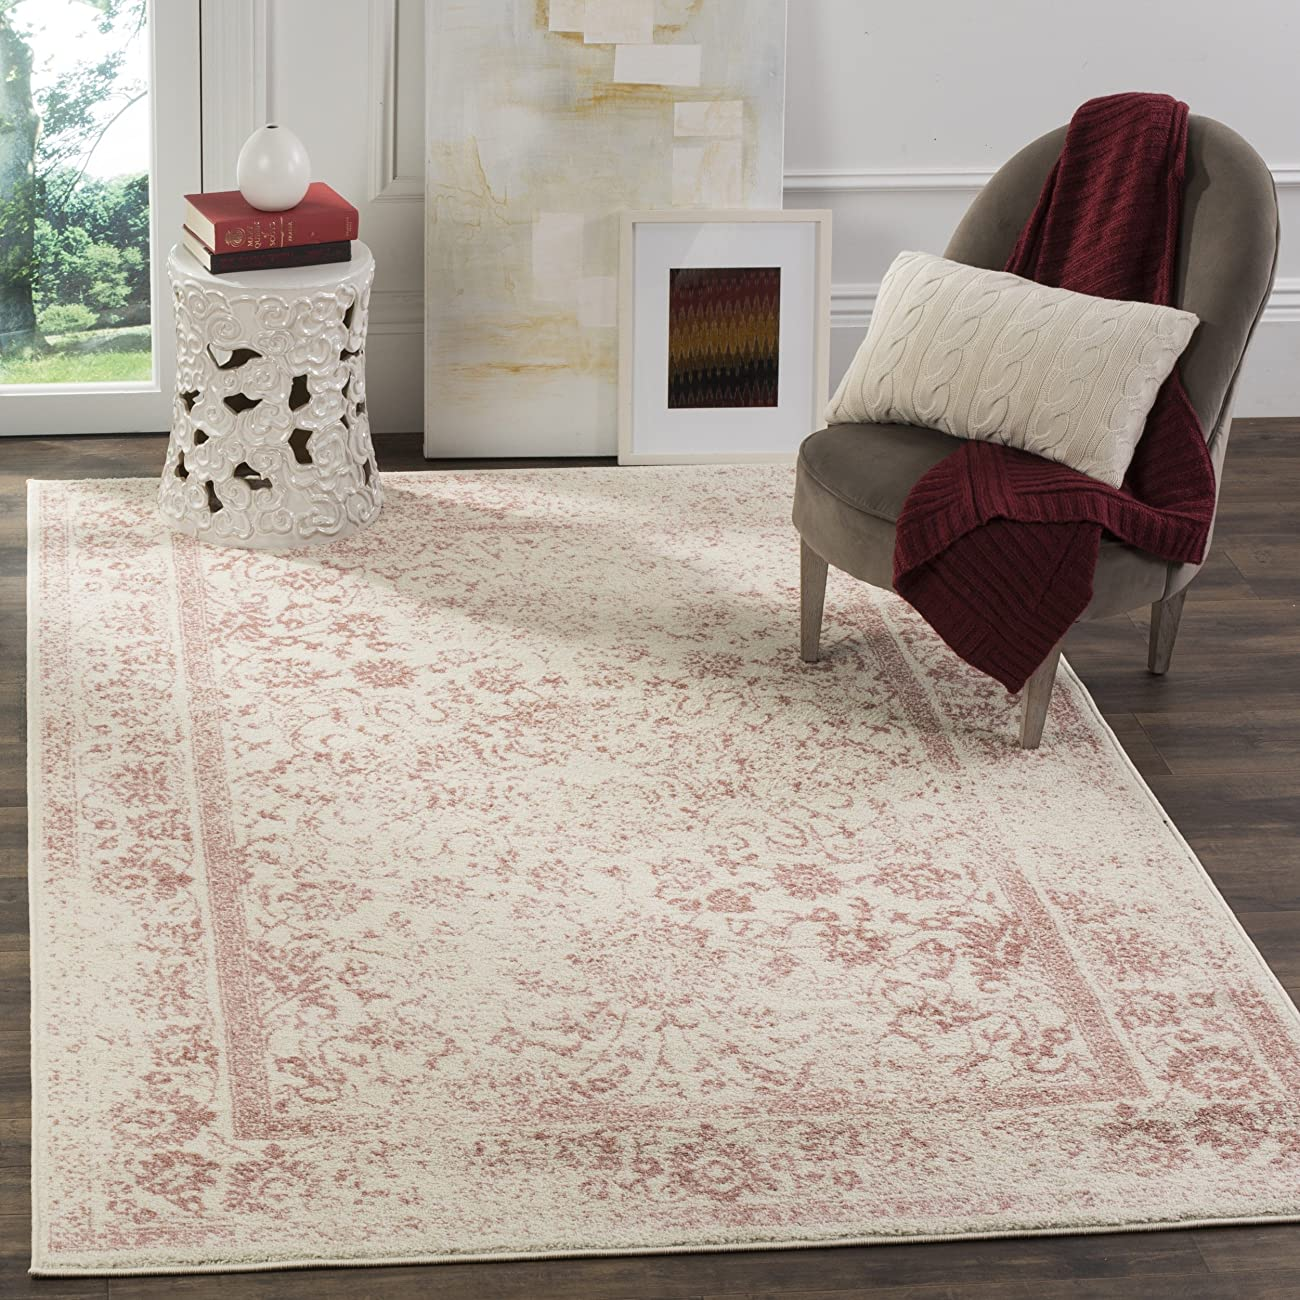 Safavieh Adirondack Collection ADR109H Ivory and Rose Oriental Vintage Area Rug (8' x 10') 0